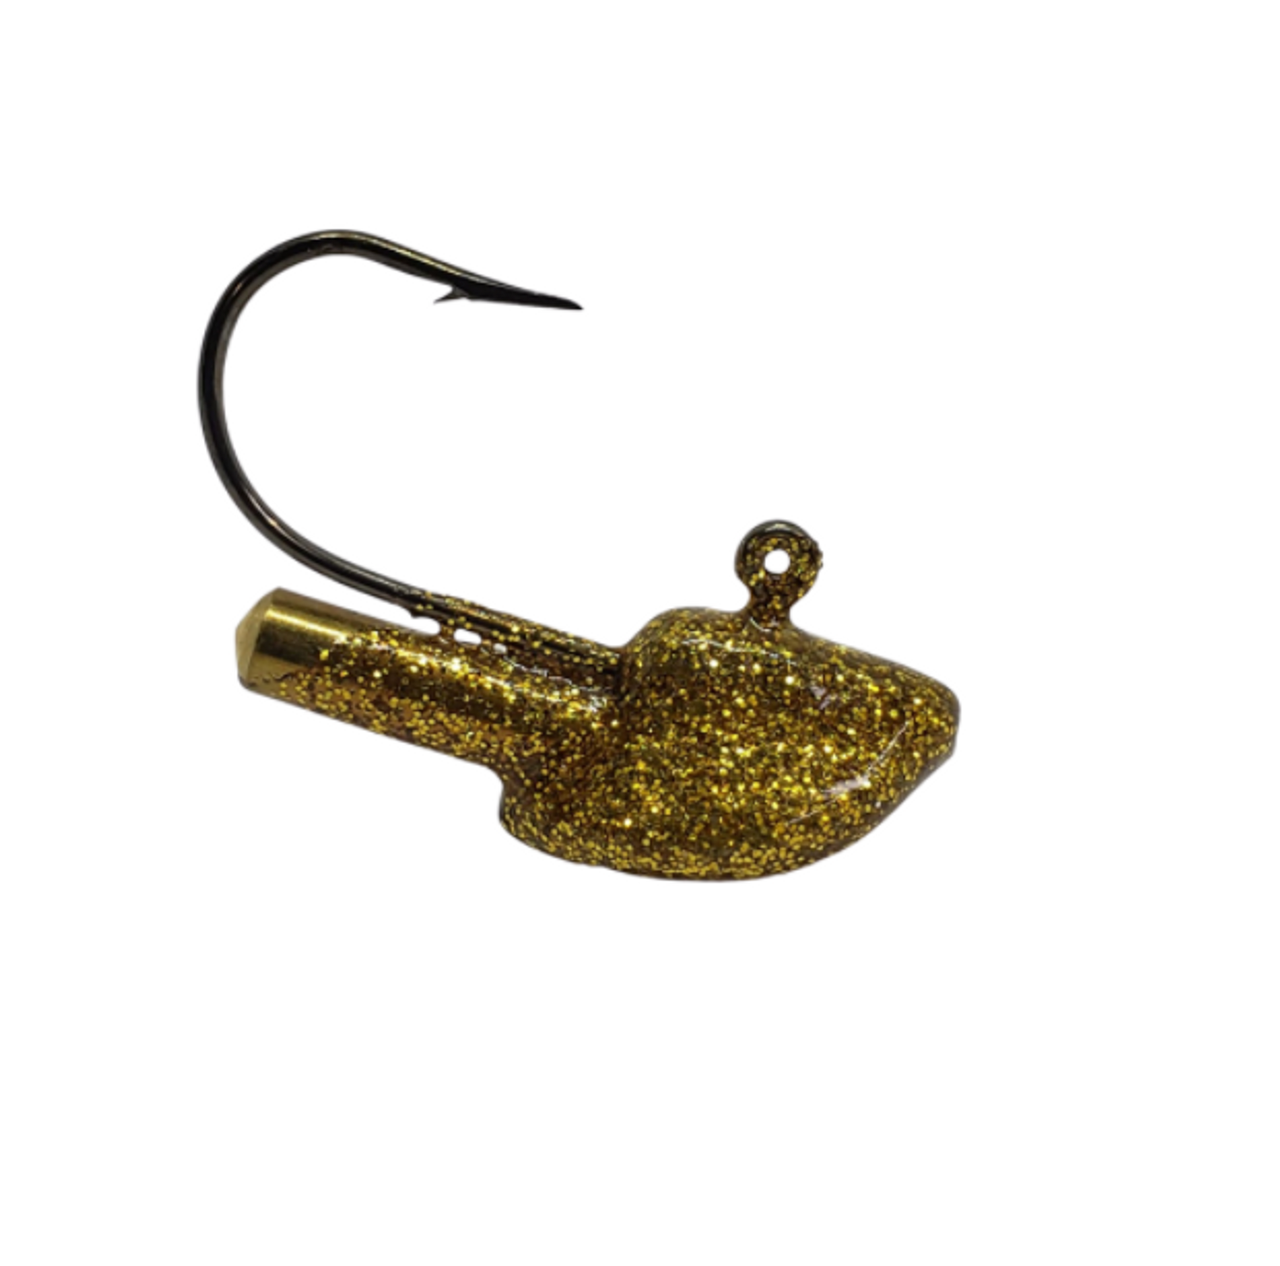 Erie Stand Up 1/4oz Rattle These short shank erie stand ups are the perfect combination for those finicky walleye who are light biting. The small presentation paired with a minnow or leech assists with those bites when walleye are just sucking it in. Short shank jigs are also a favourite for using with live minnows. Plus the design of the Erie Jig keeps your bait standing up off the bottom, giving the presentation of a minnow feeding. The added bonus of the short shank with no collar also means quicker hook set. Plus, we have included an incorporated brass rattle for adding sound and vibration as extra attractant.